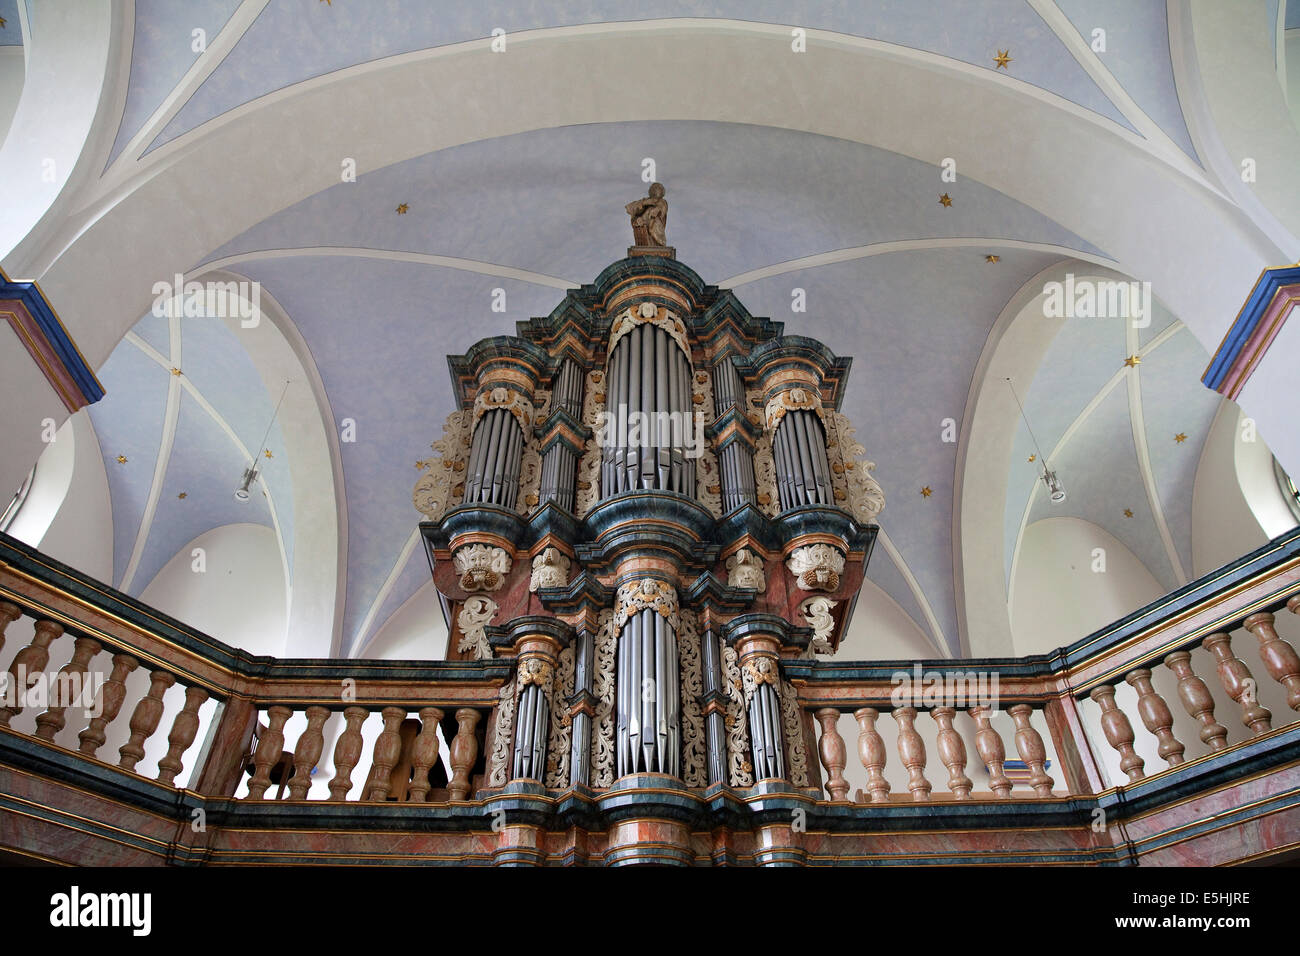 Organ in the baroque Church of St. Pancras, Körbecke, Möhnesee, Sauerland, North Rhine-Westphalia, Germany - Stock Image